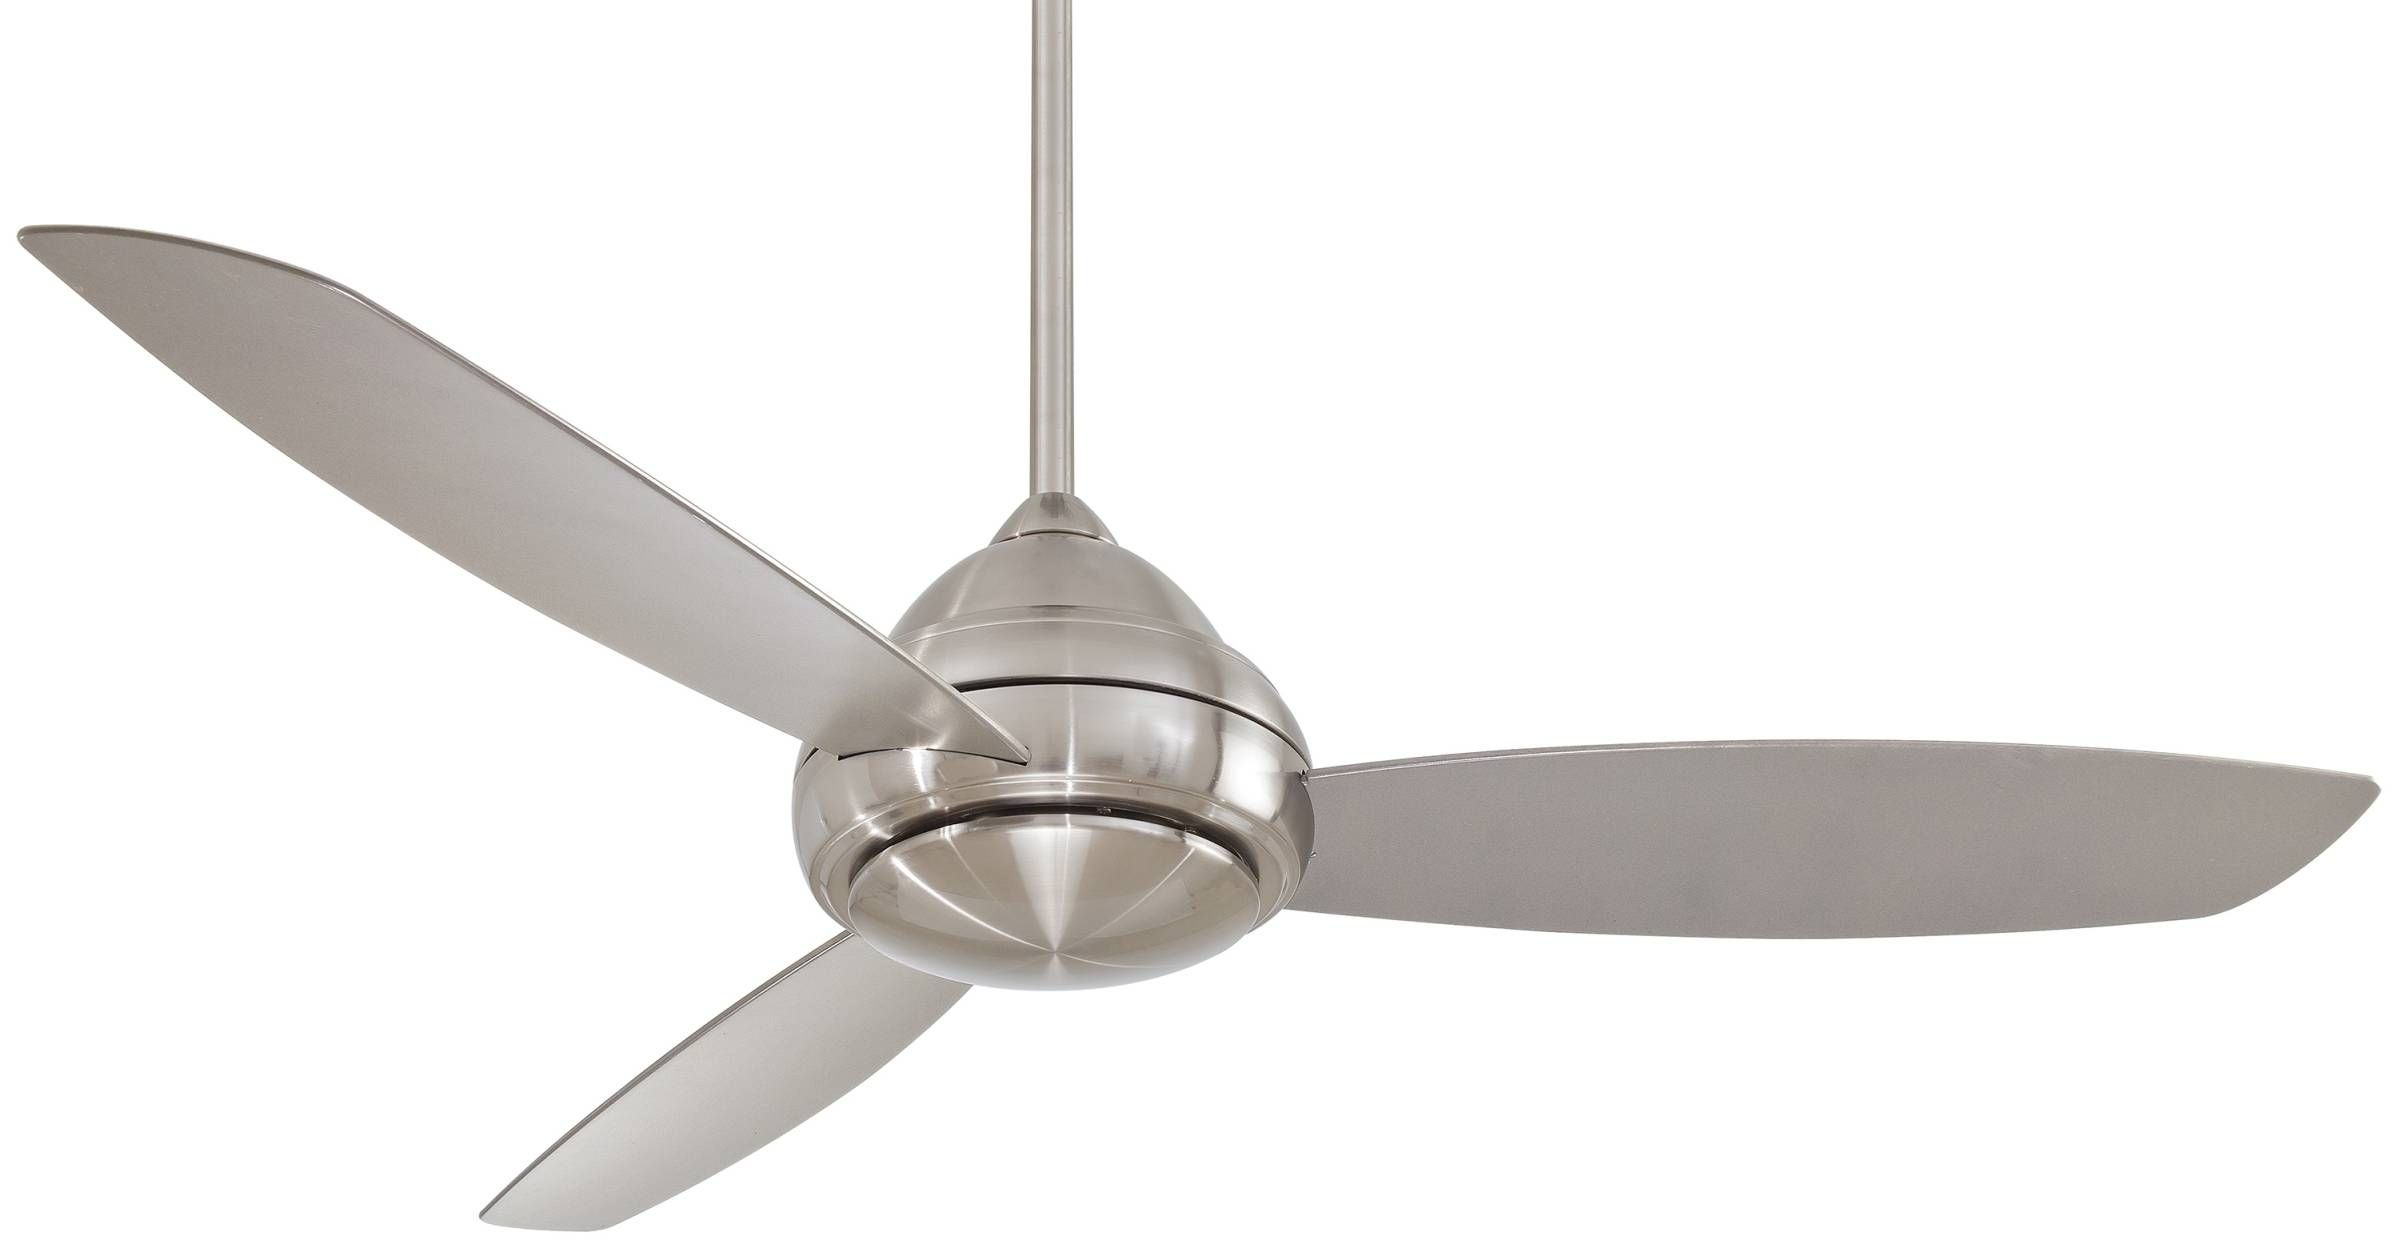 Stainless steel ceiling fan without lights